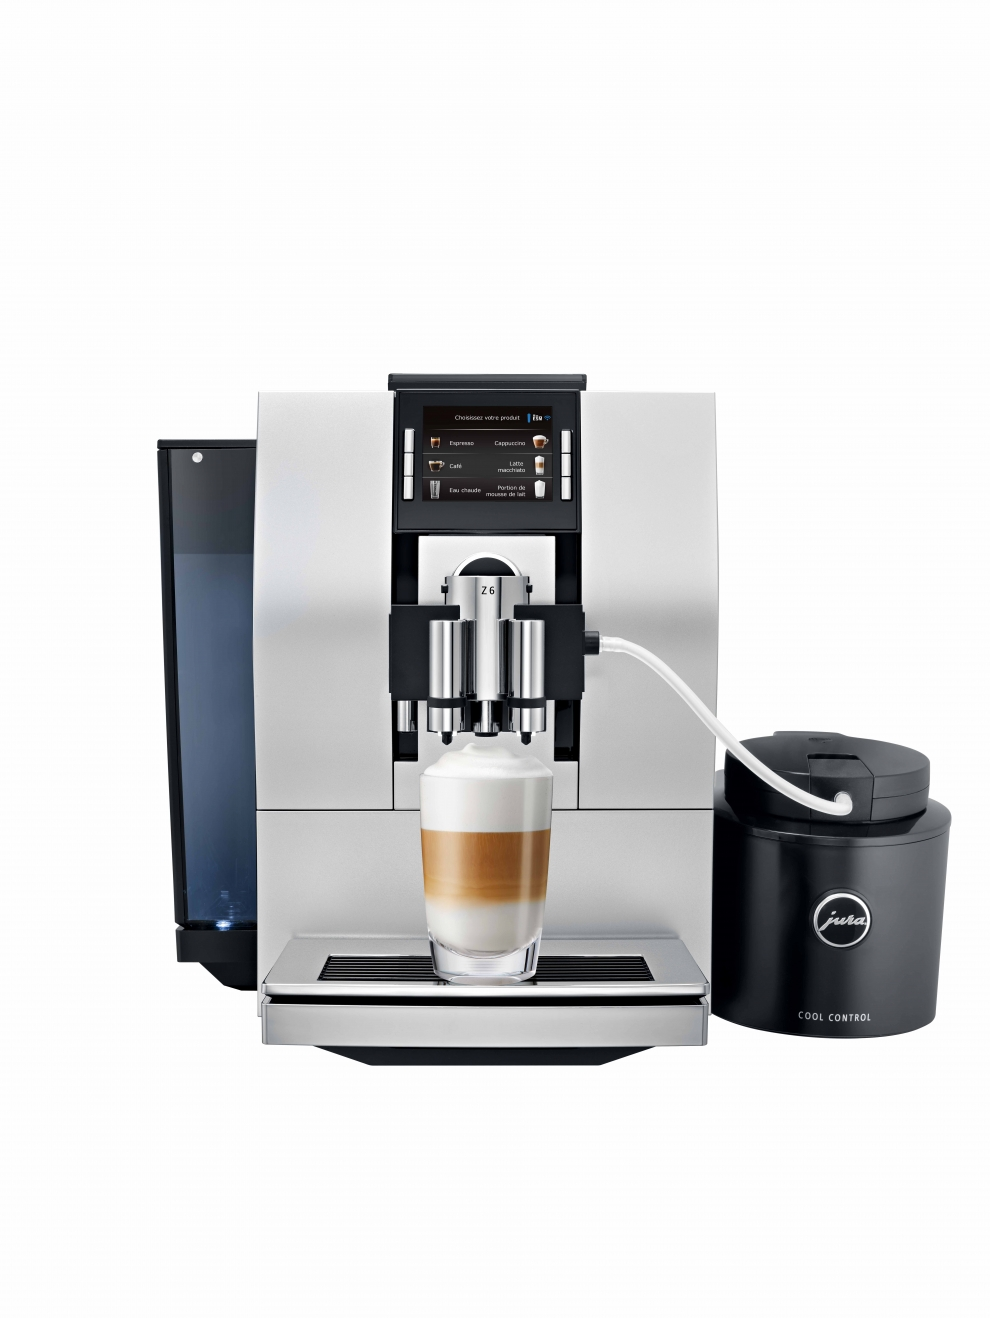 machine a cafe delonghi avec broyeur delonghi machine expresso avec broyeur esam 4500les. Black Bedroom Furniture Sets. Home Design Ideas